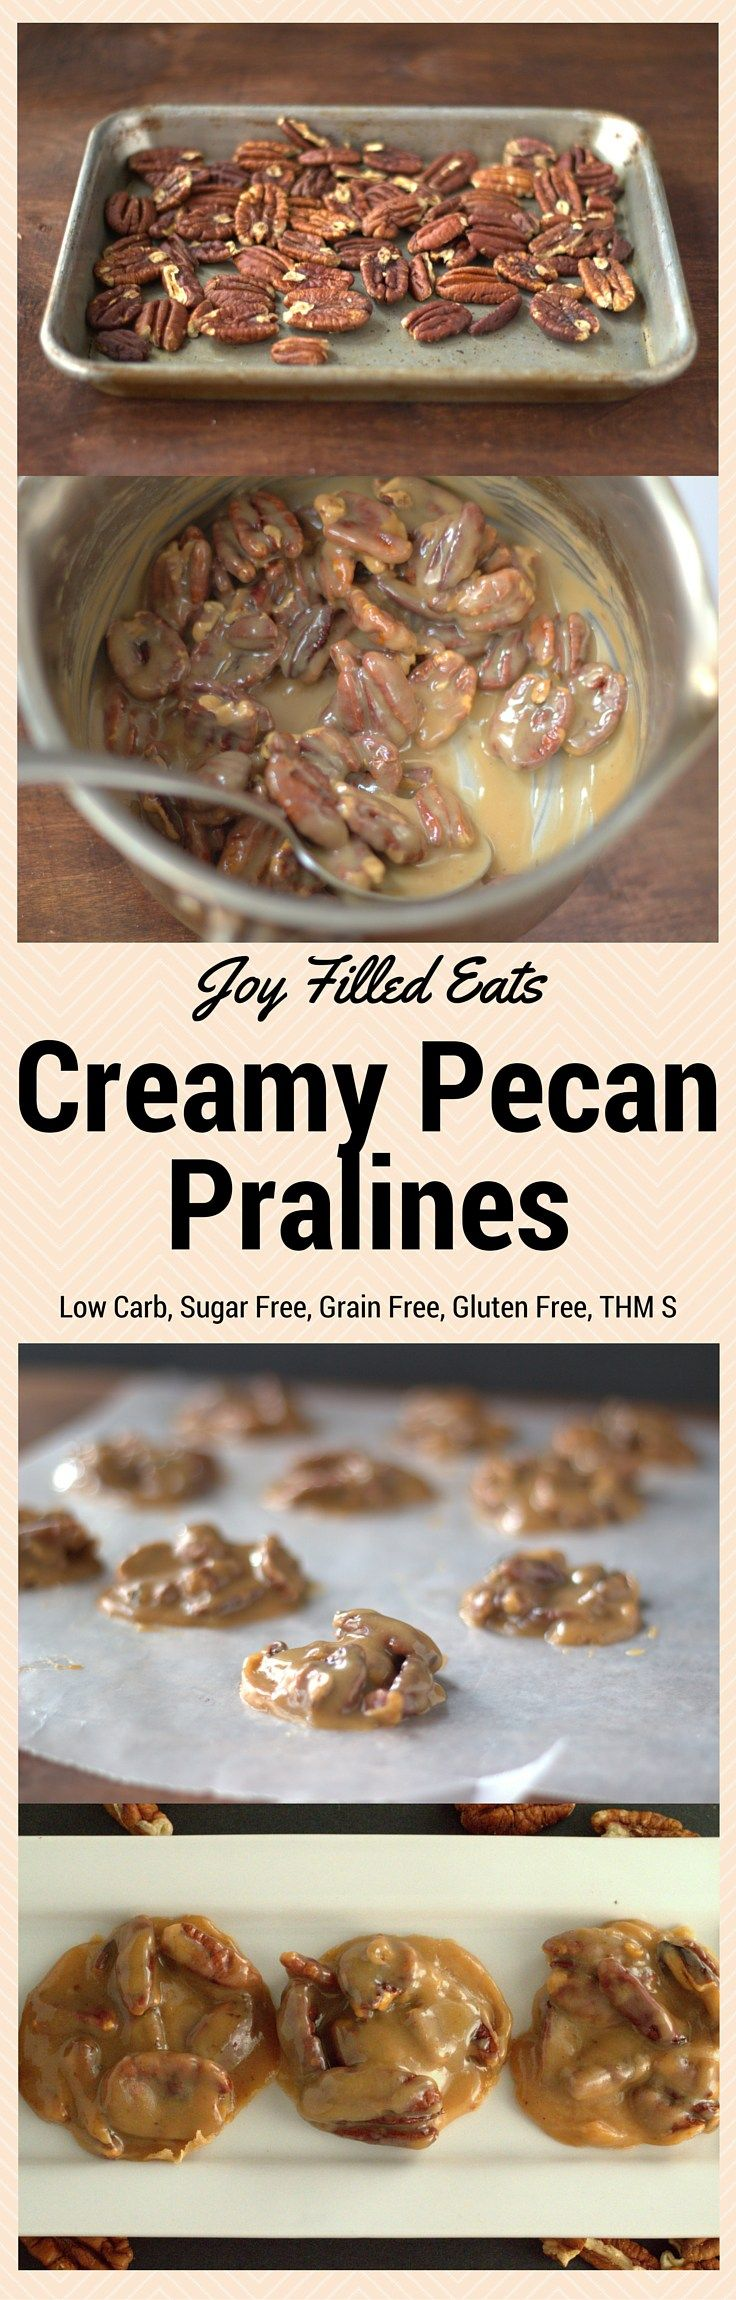 Delicious Creamy Pecan Pralines are luscious, sugar-free and very low in carbs!  From Joy Filled Eats #healthy #lowcarb